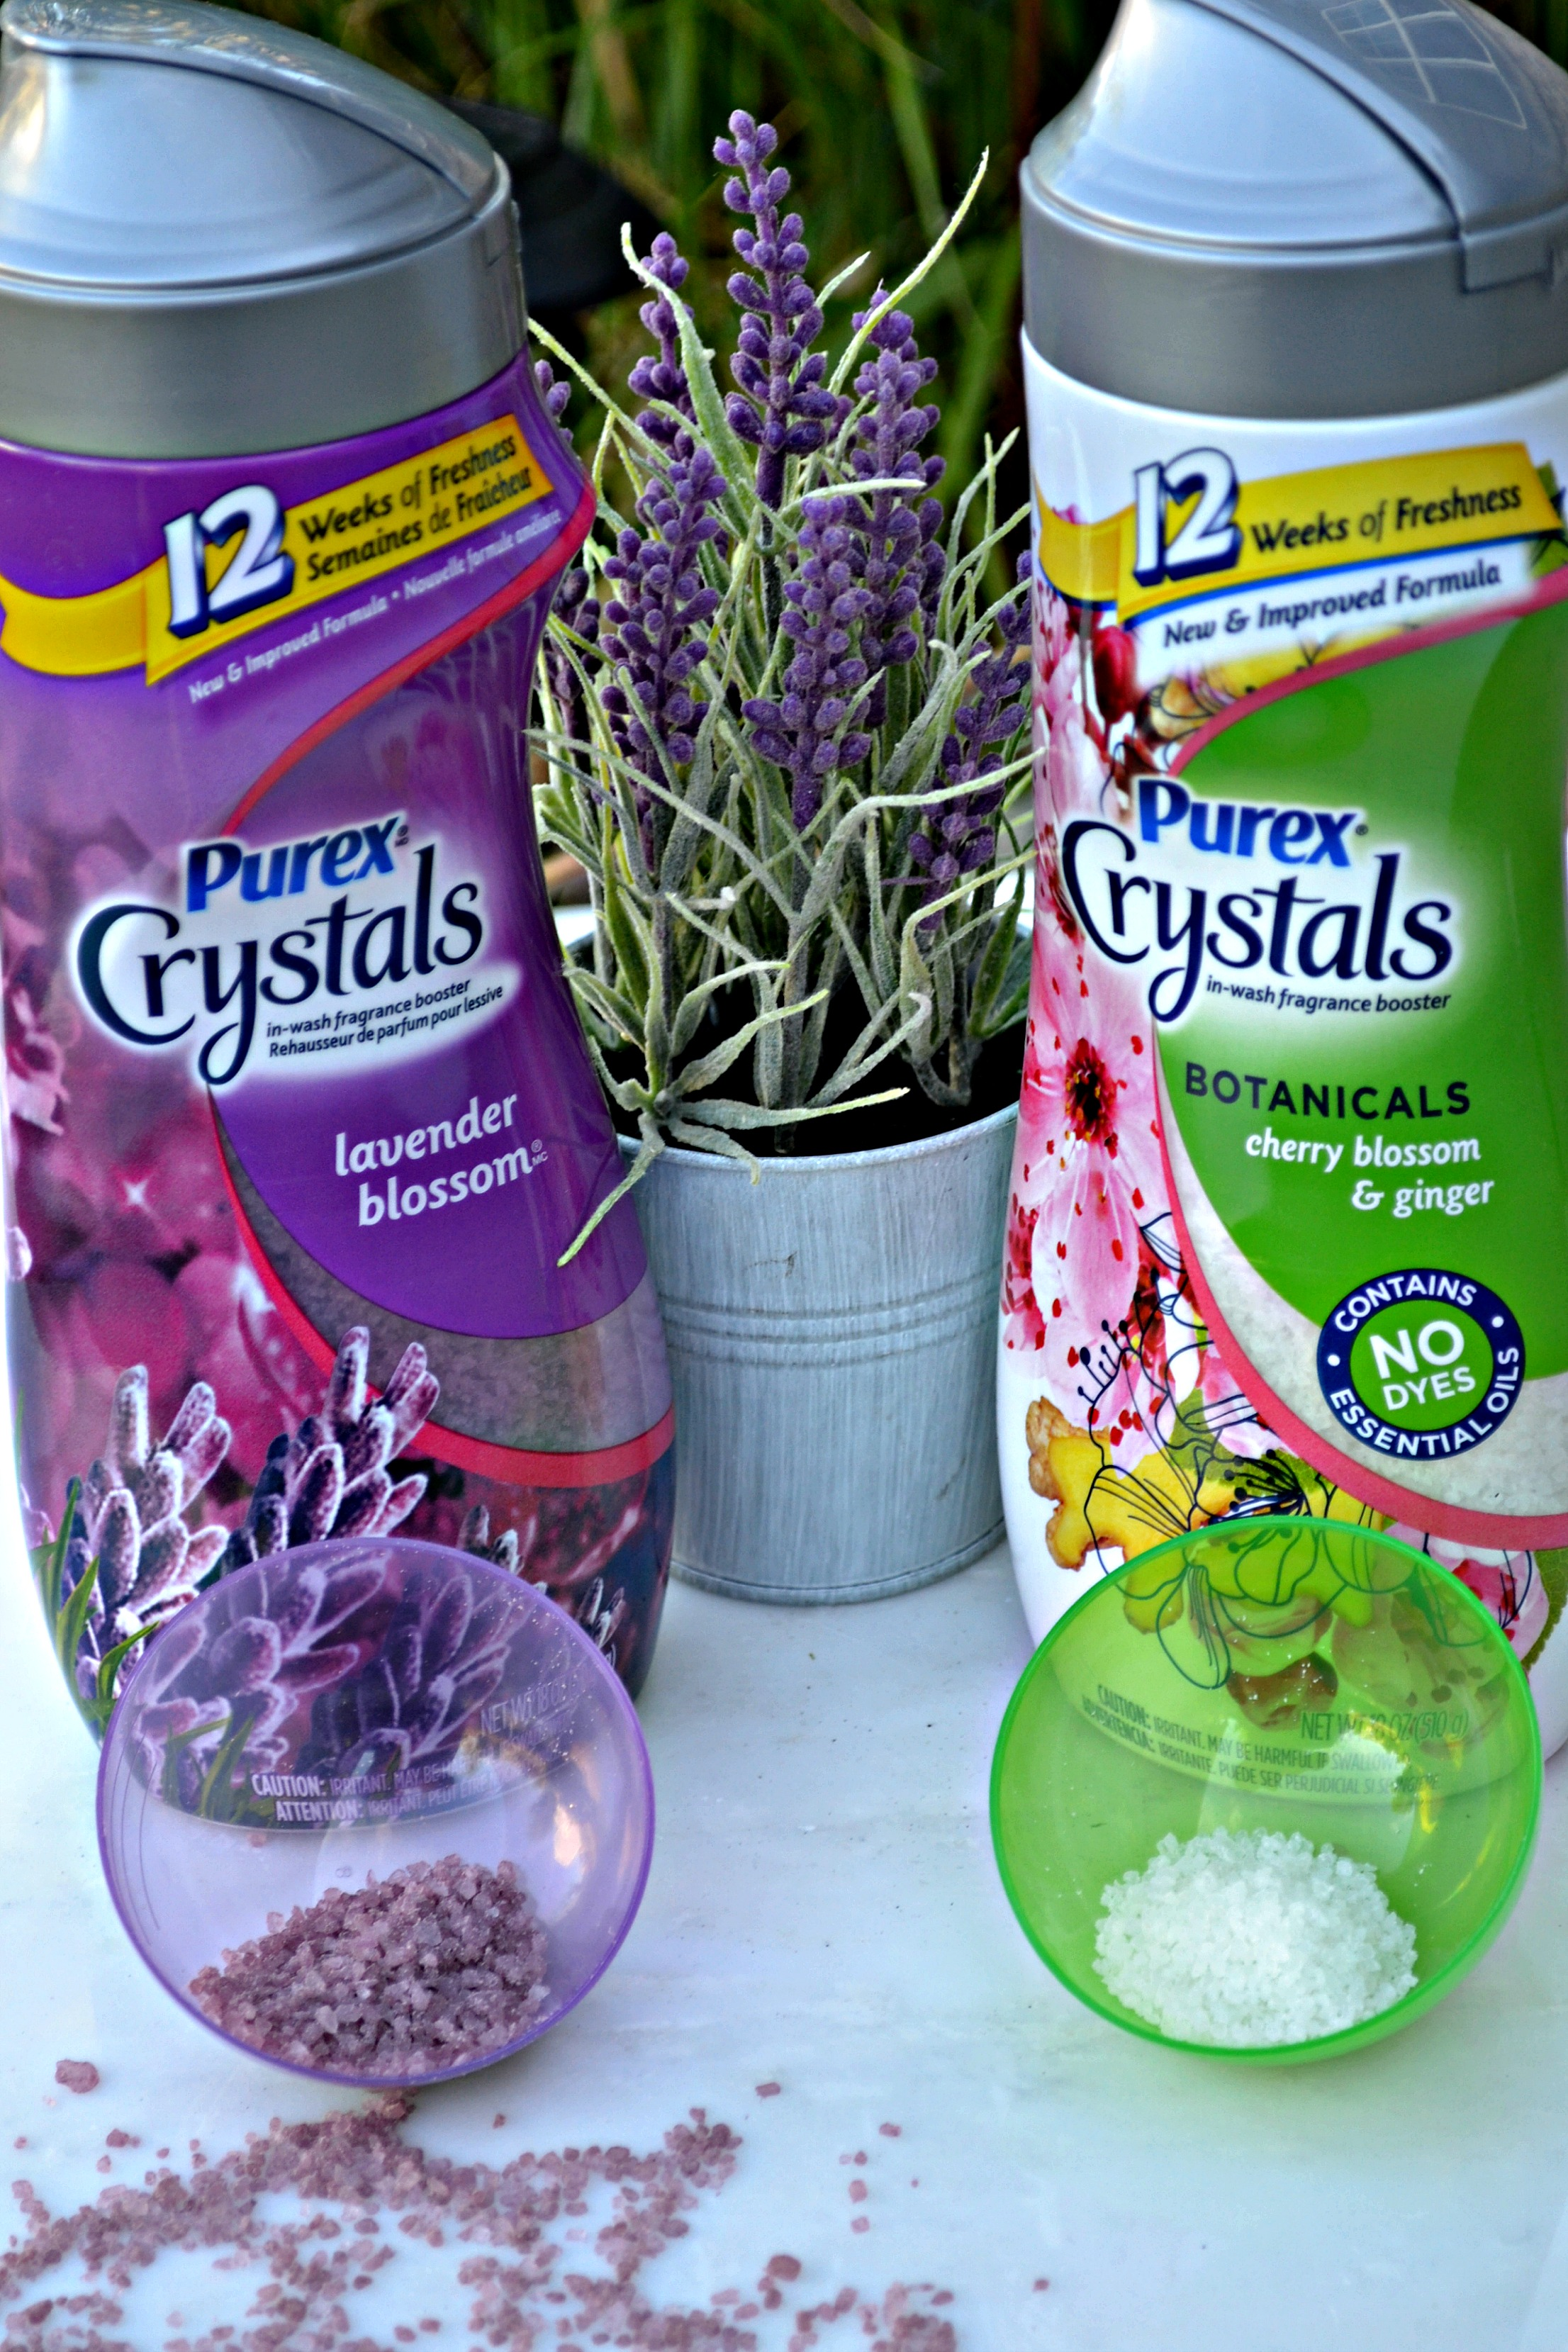 12 weeks of Fresh with Purex Crystals